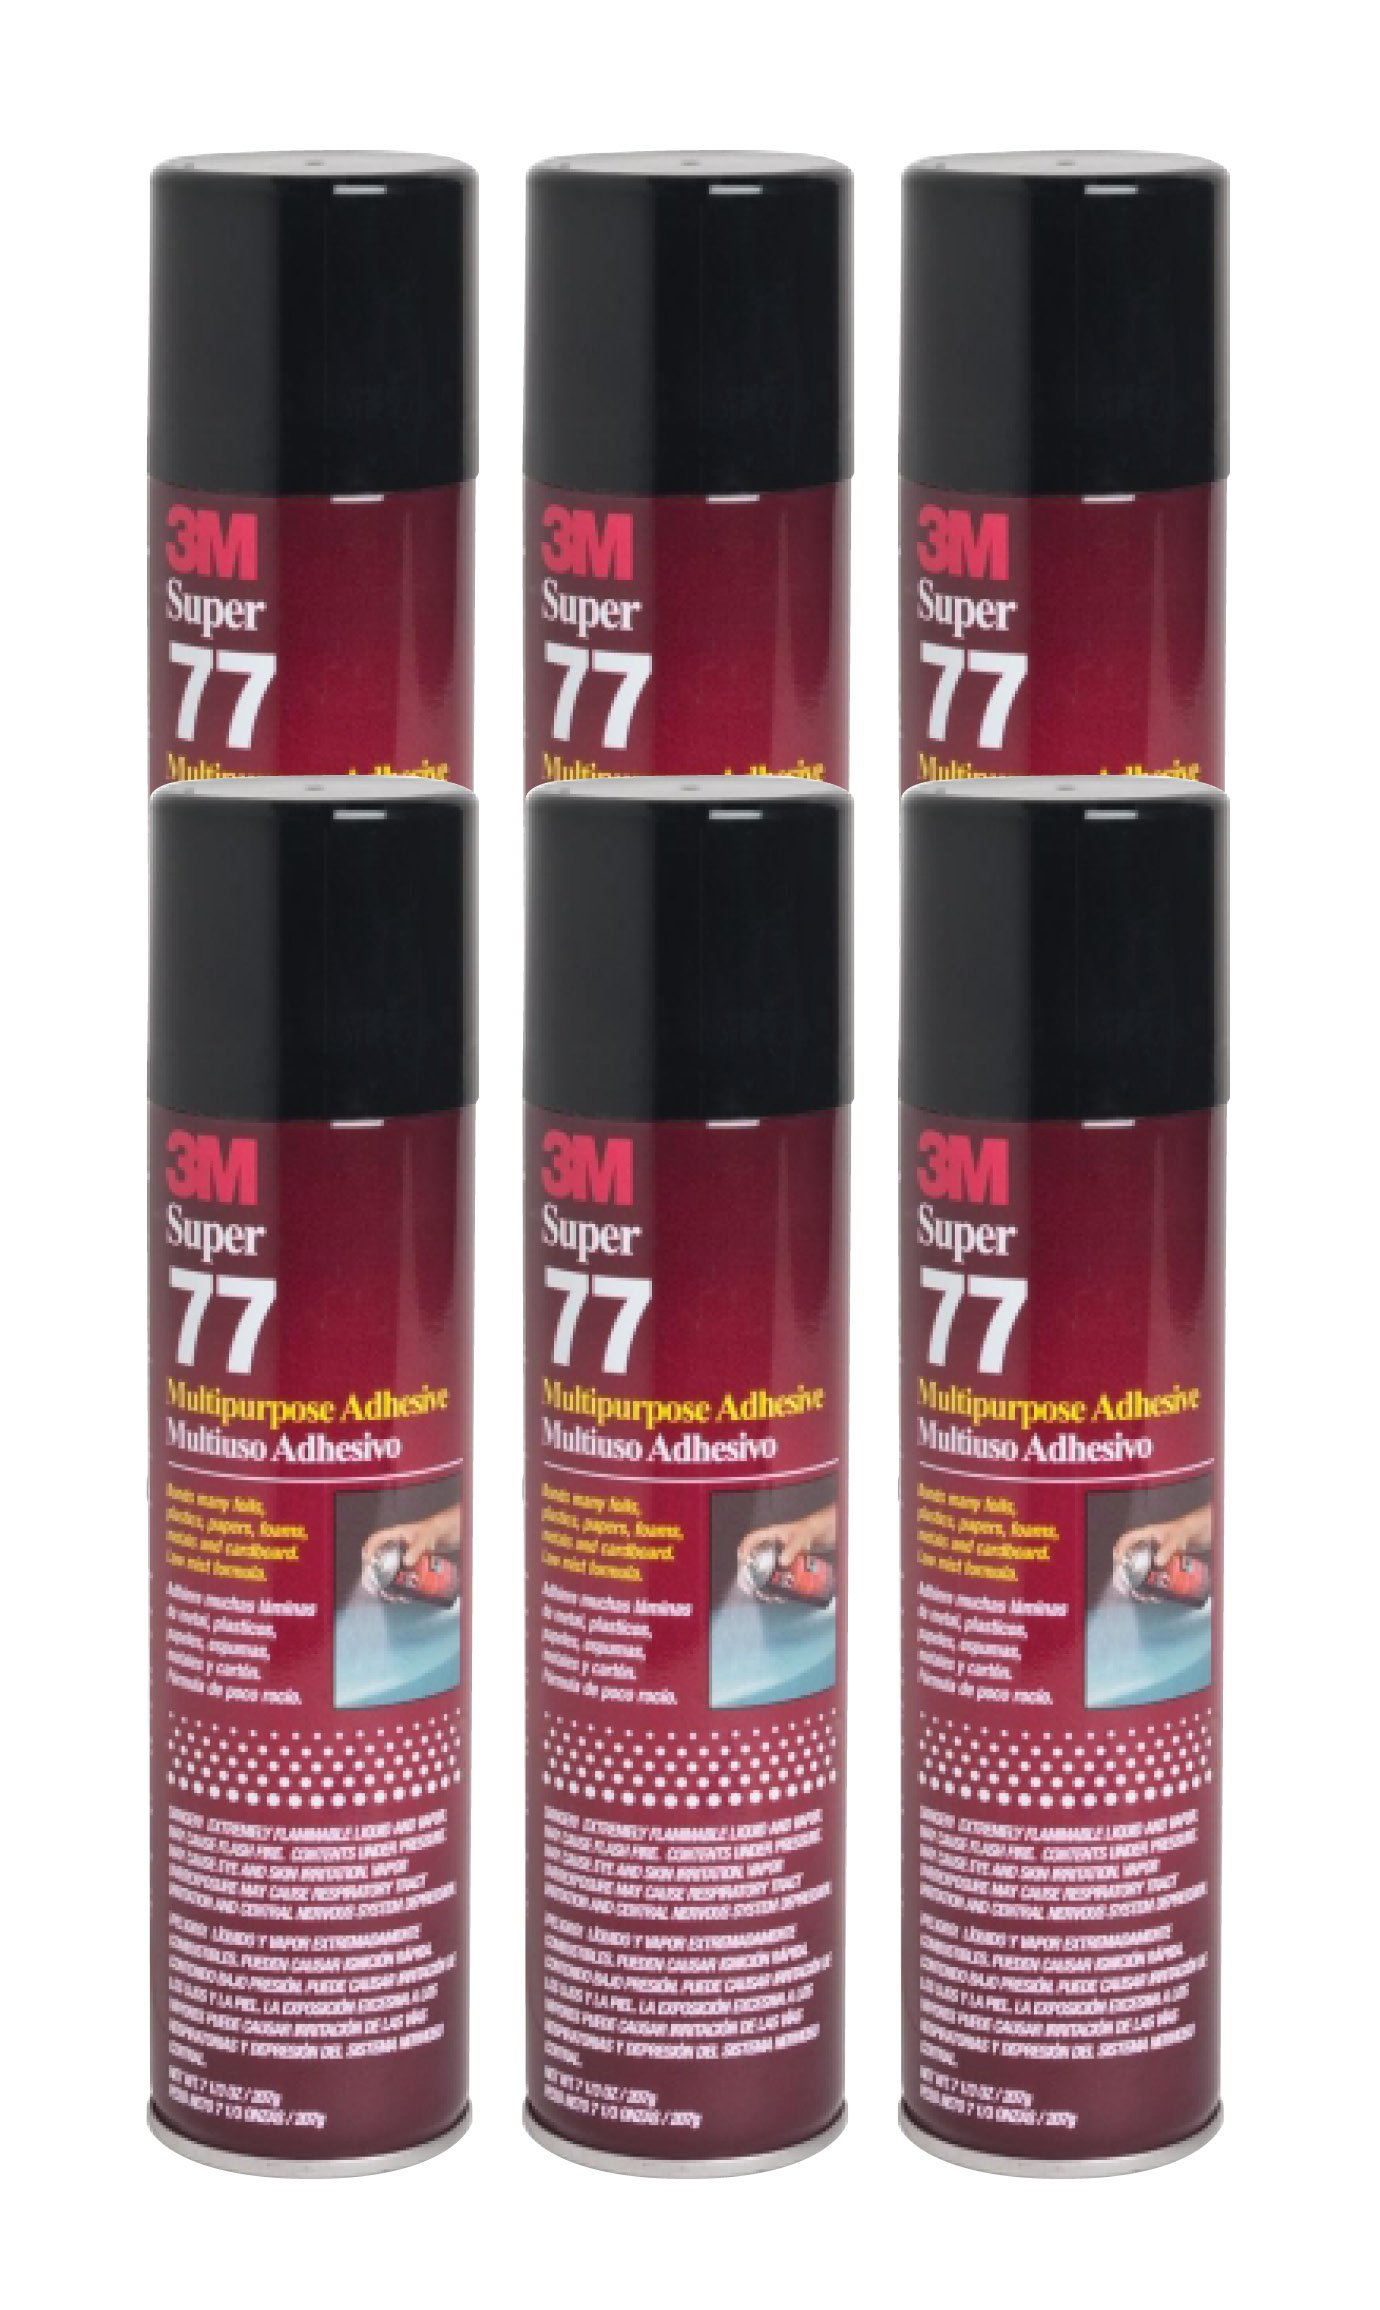 QTY6 3M SUPER 77 7.3oz SPRAY GLUE ADHESIVE for SPEAKER BOX ENCLOSURE by 3M SUPER 77